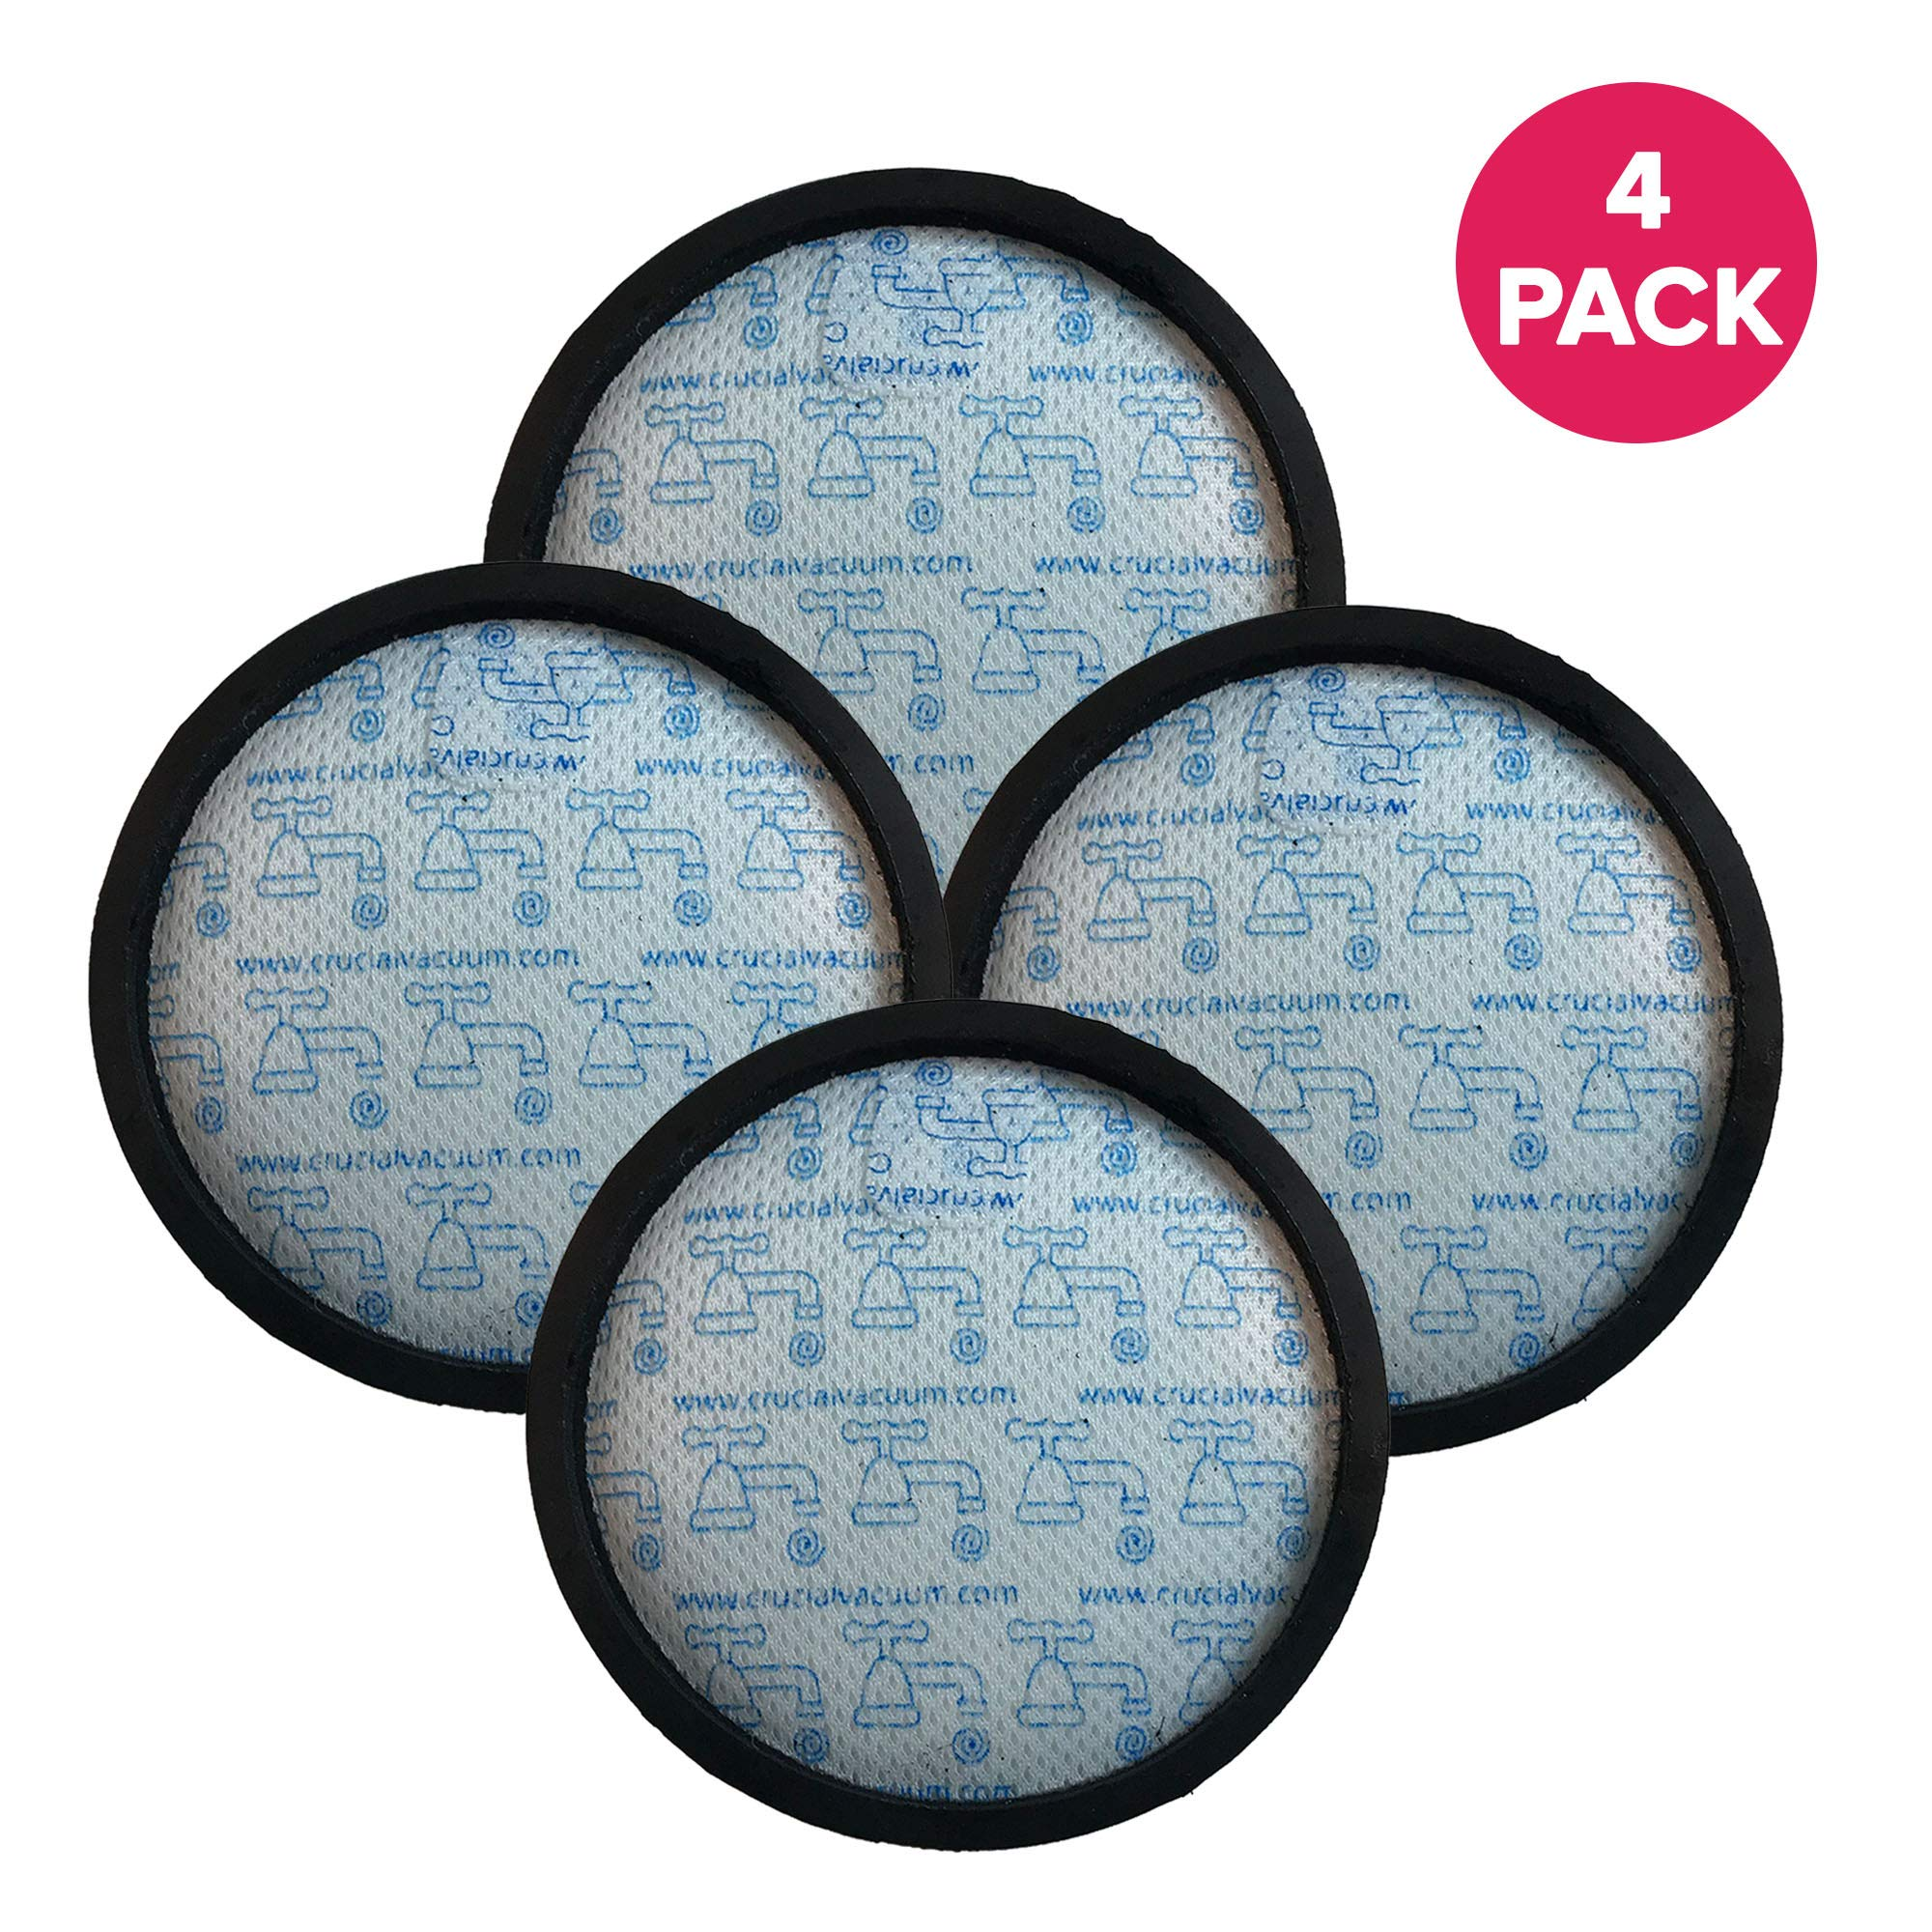 Crucial Vacuum Pre-Filter Replacement - Compatible with Dyson DC-18 Pre-Motor Filter - Pair with Part 911685-01 for Long Life - Compact, Washable, Reusable Vacuum Filter - Perfect for Home (4 Pack)